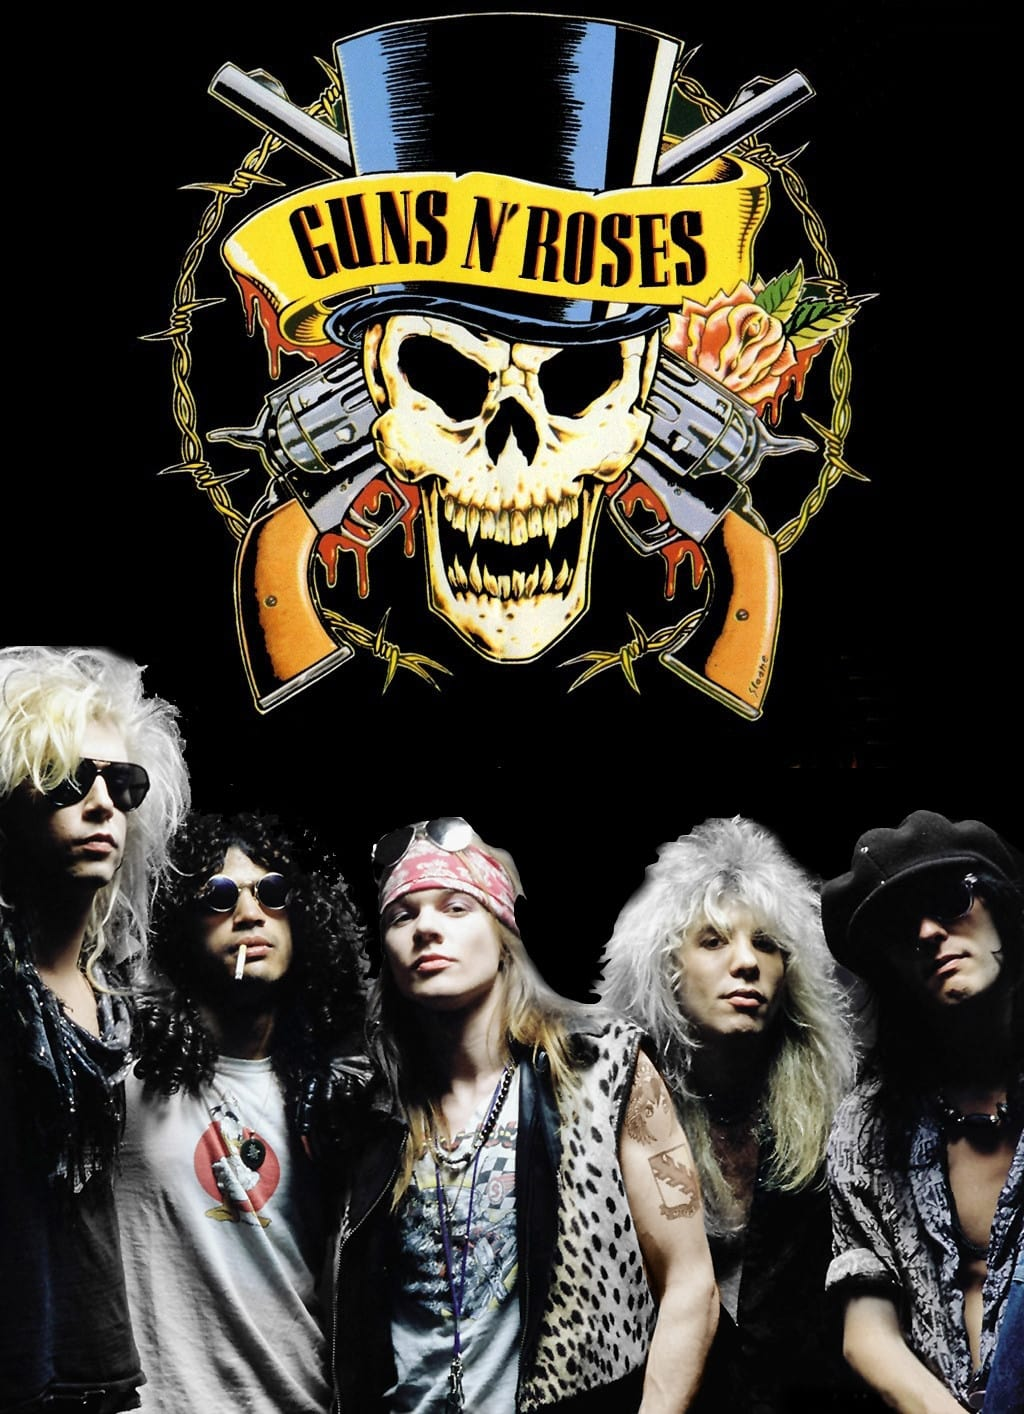 guns n roses profile images � the movie database tmdb